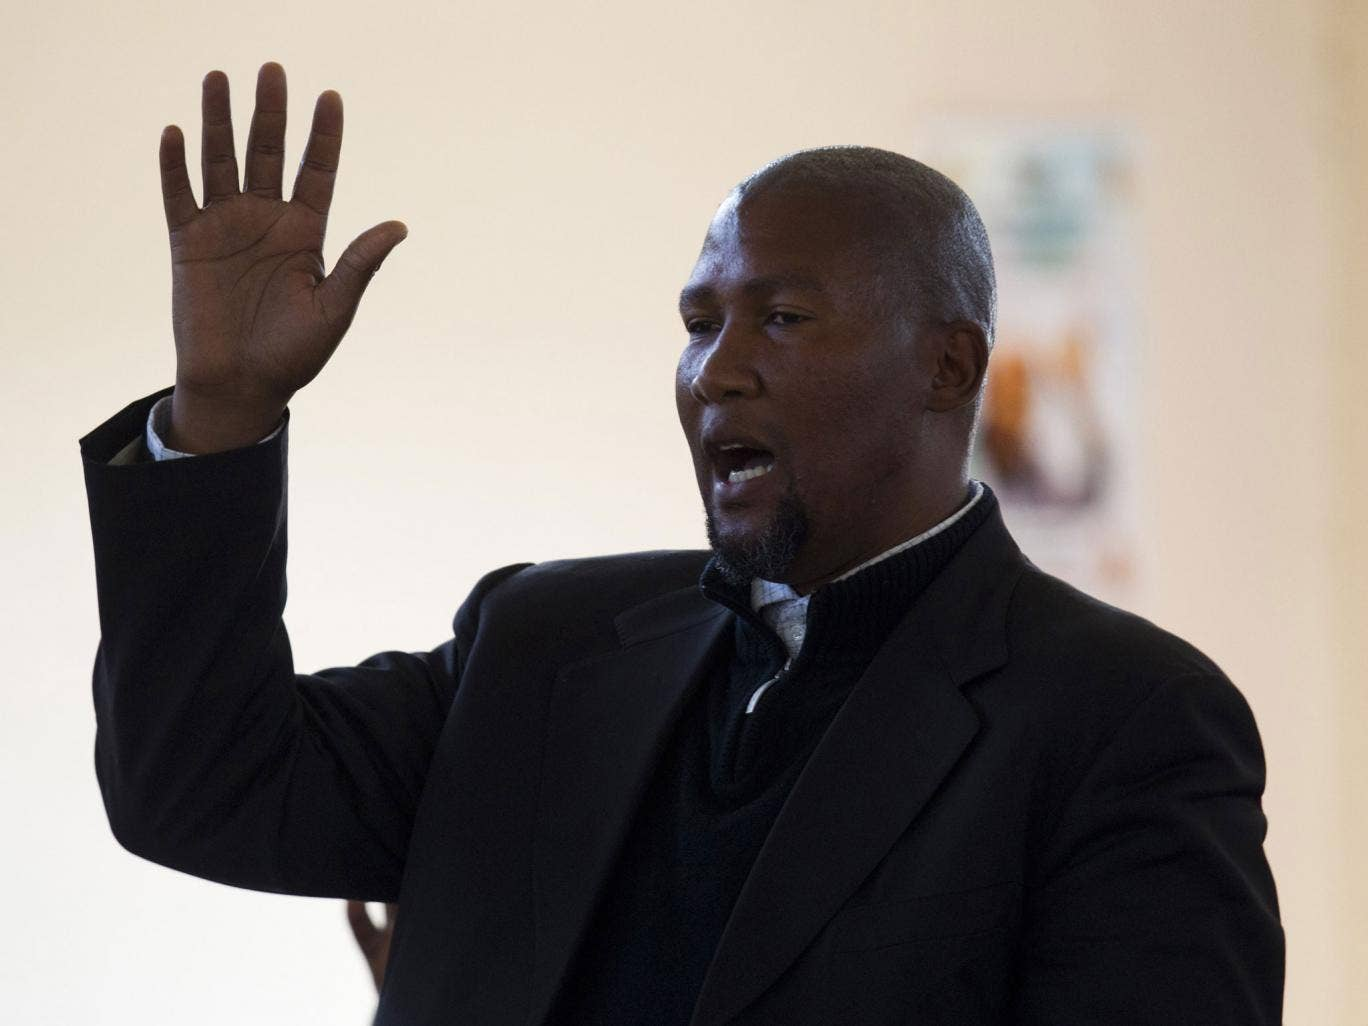 Mandla Mandela, pictured, had five of Nelson Mandela's dead relatives relocated to his own village in Mvezo. Other Mandela family members want them returned to Qunu